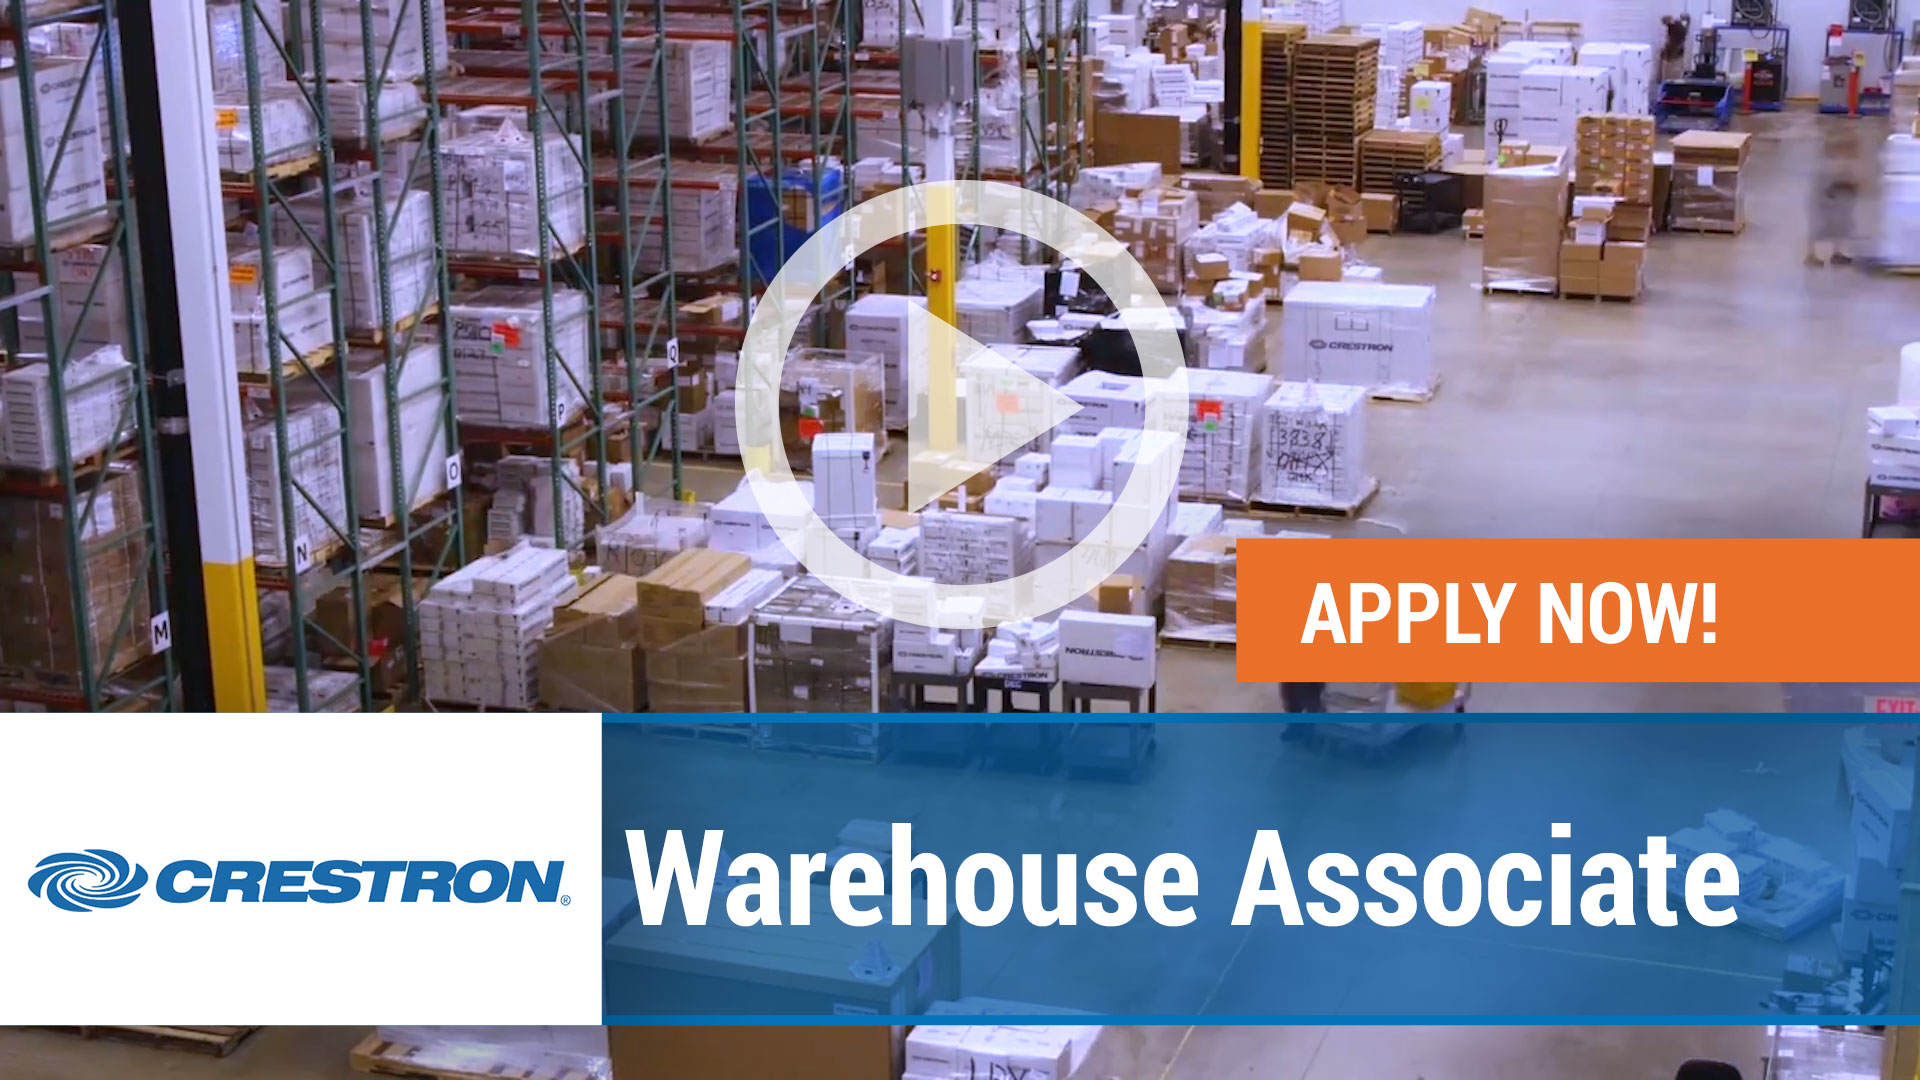 Watch our careers video for available job opening Warehouse Associate in Orangeburg, NY, USA